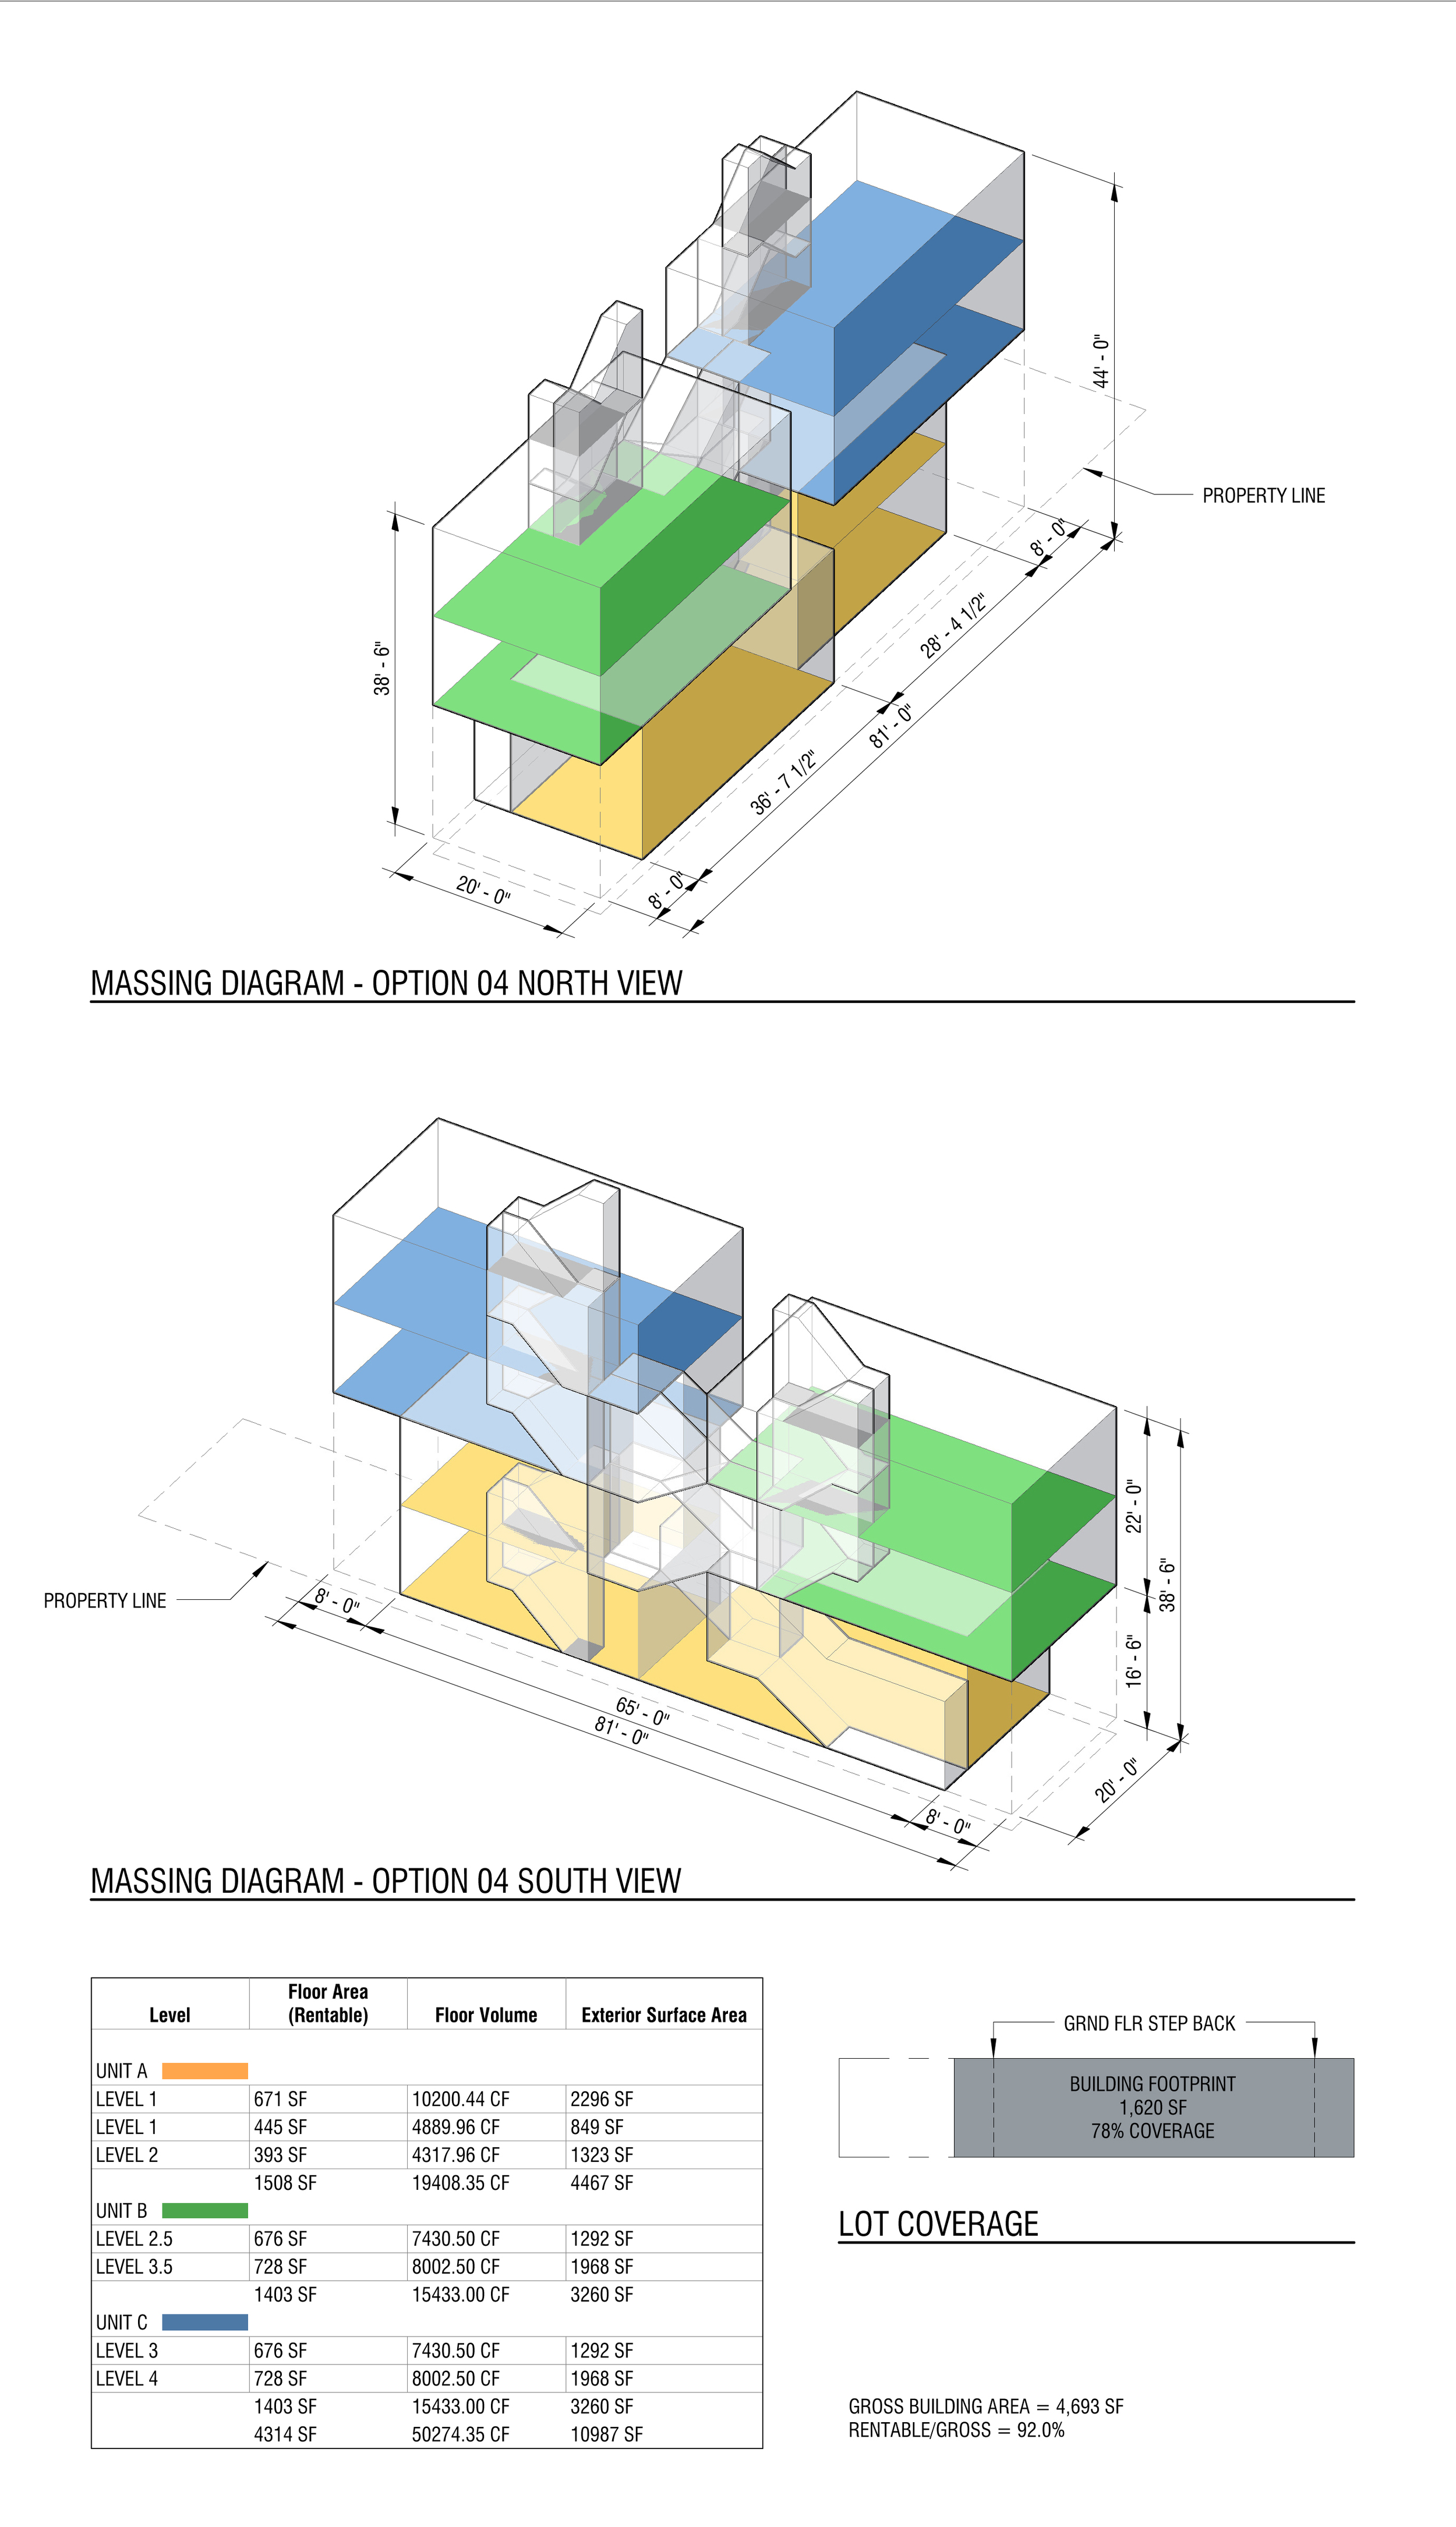 """^ This iteration utilizes a stacking approach that creates three """"duplex"""" apartments while minimizing the overall building lot coverage. Note that 78% lot coverage is the """"actual"""" coverage by code definition, but the ground floor step backs actually increase the amount of useable open area. This iteration also minimizes the common circulation (common stairs) by staggering the upper apartments vertically."""